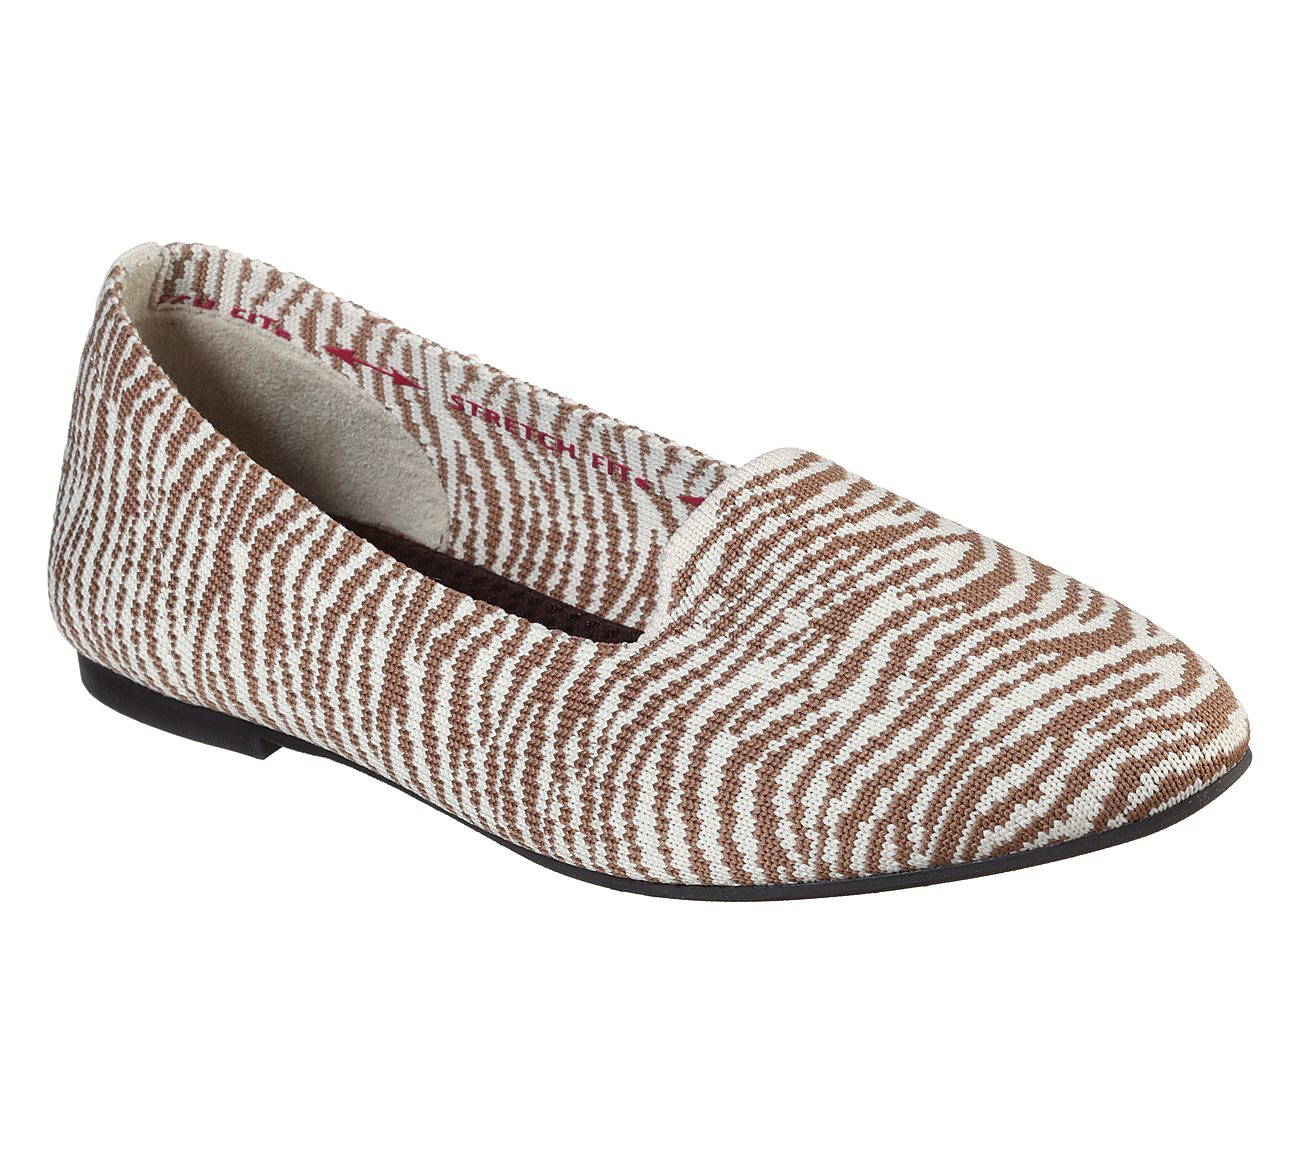 Buy Skechers Cleo Knitty Zebra Modern Comfort Shoes